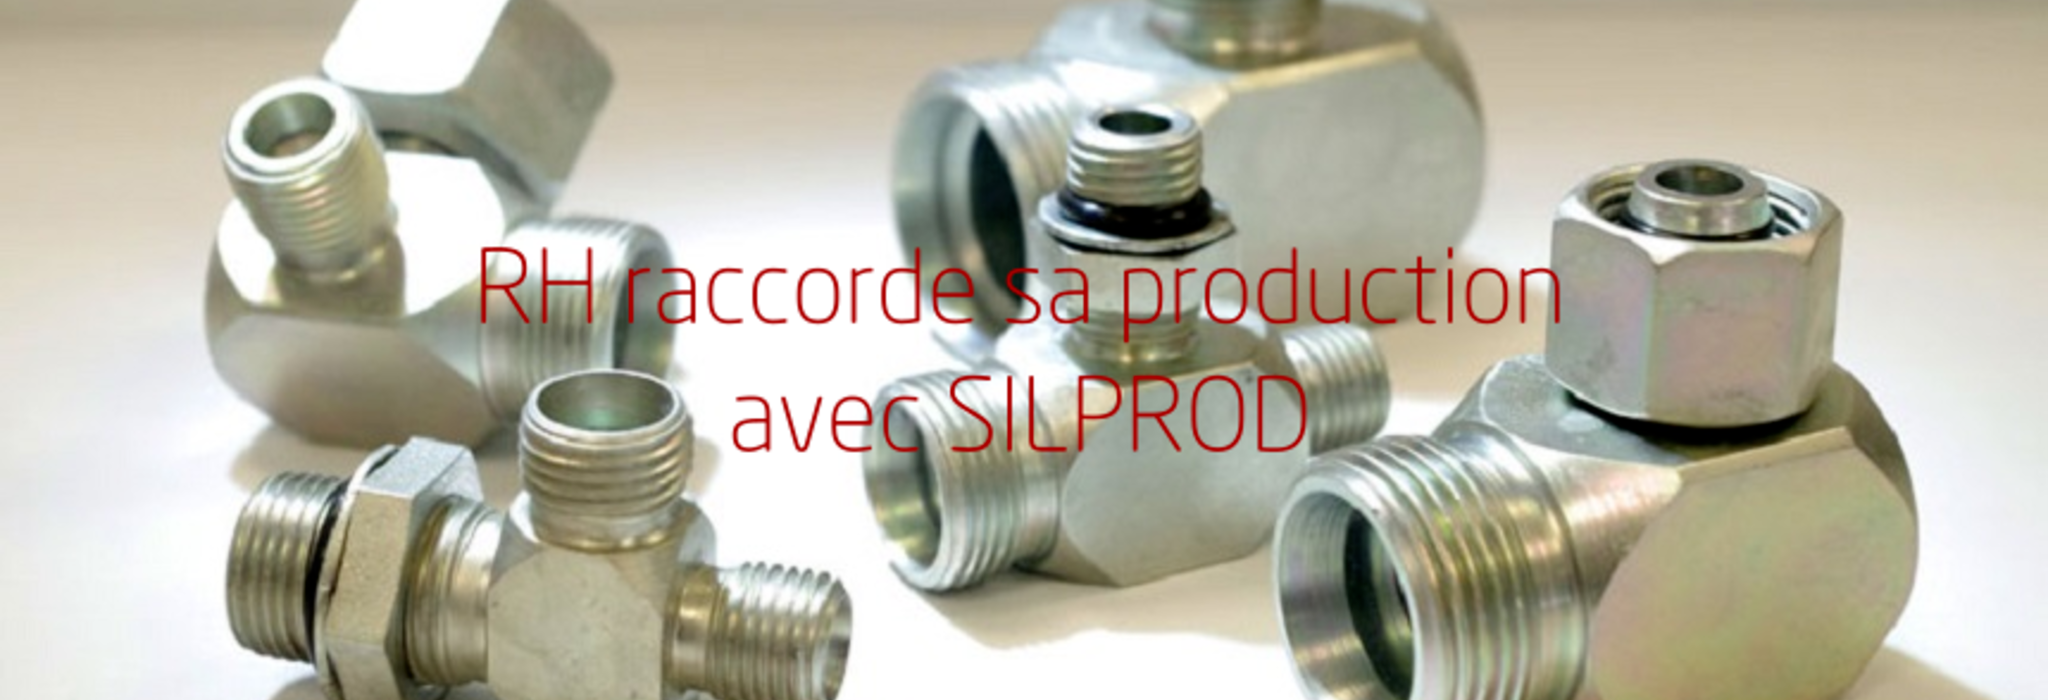 SILPROD